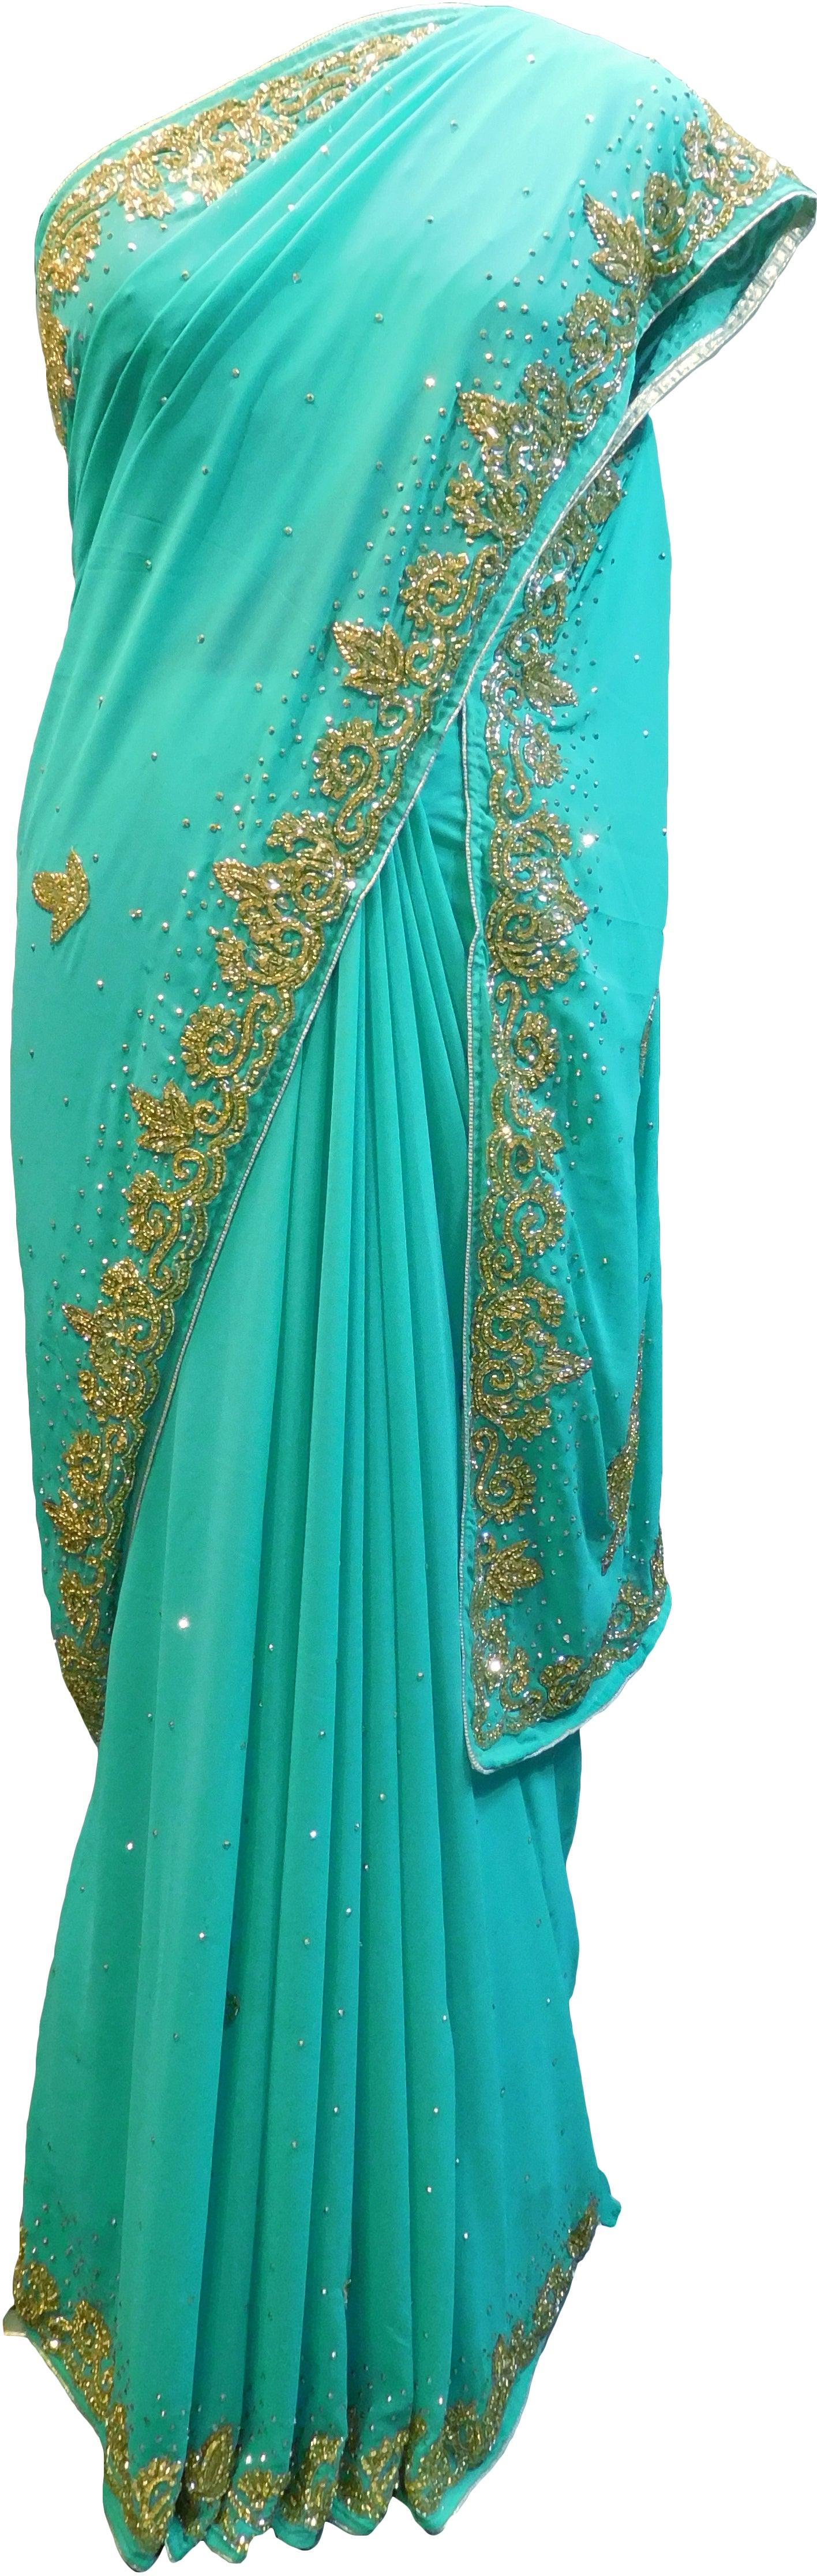 SMSAREE Turquoise Designer Wedding Partywear Georgette Thread Cutdana & Stone Hand Embroidery Work Bridal Saree Sari With Blouse Piece E866